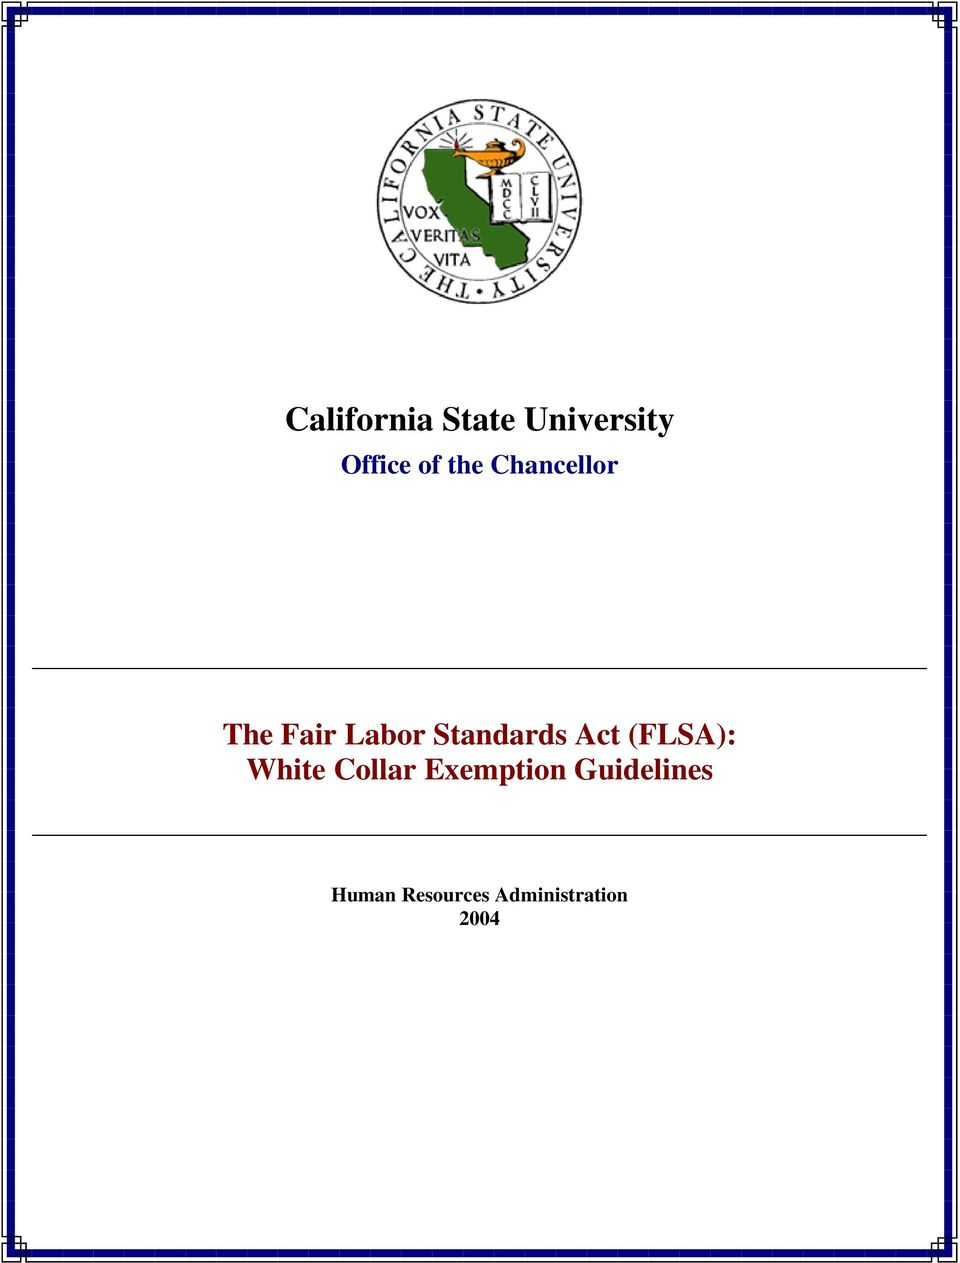 Act (FLSA): White Collar Exemption